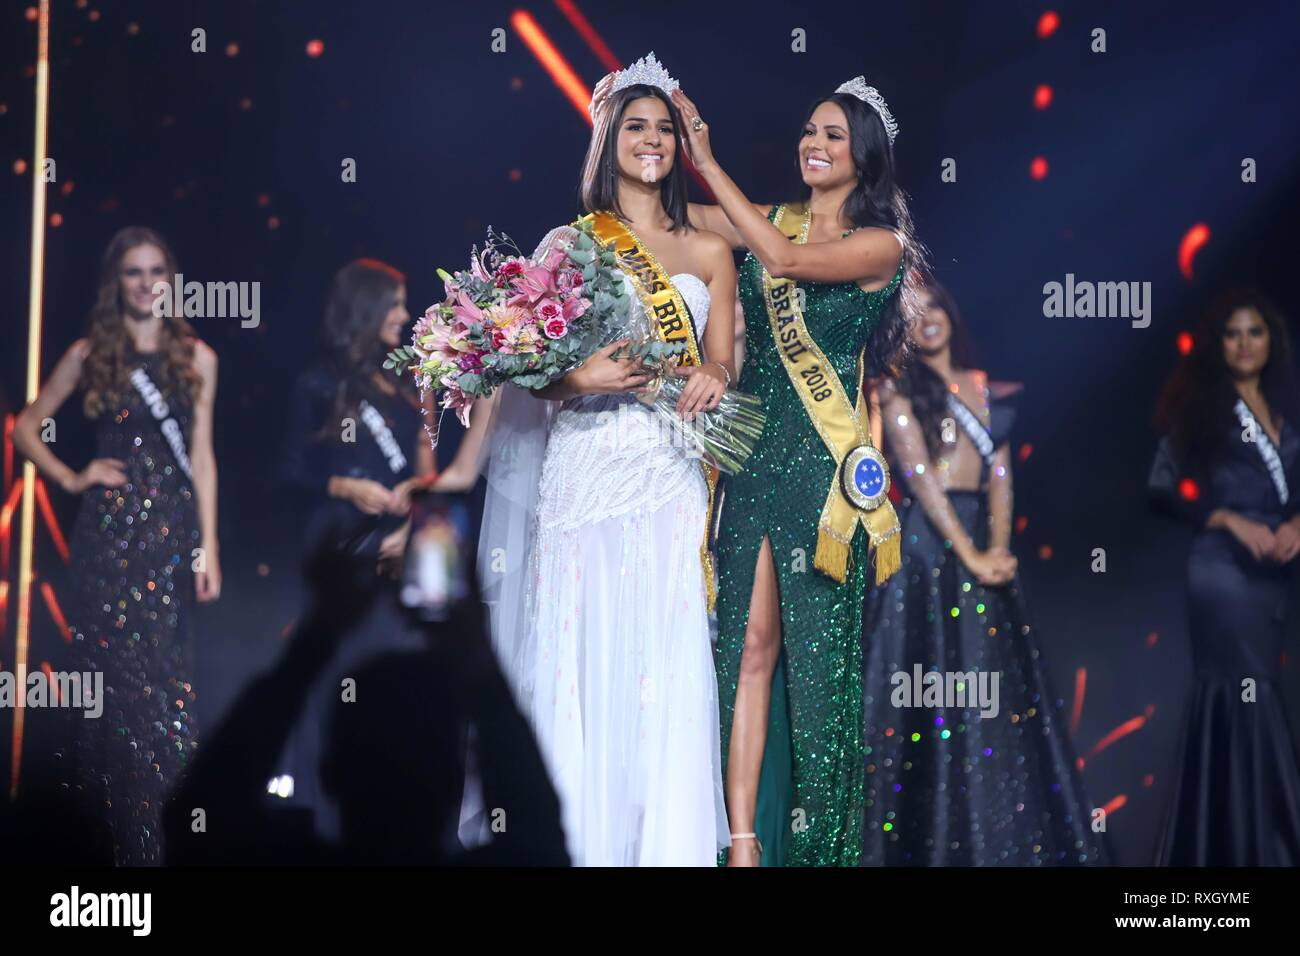 Sao Paulo, Brazil. 9th March 2019. Winner of Miss Brazil Julia Horta of 24 years Miss Minas Gerais and Miss Brazil 2018 Mayra Dias (of green) Be Emotion during contest Miss Brazil Be Emotion in the exhibition center São Paulo Expo in the south region of the city of São Paulo, 09. Credit: William Volcov/ZUMA Wire/Alamy Live News Stock Photo